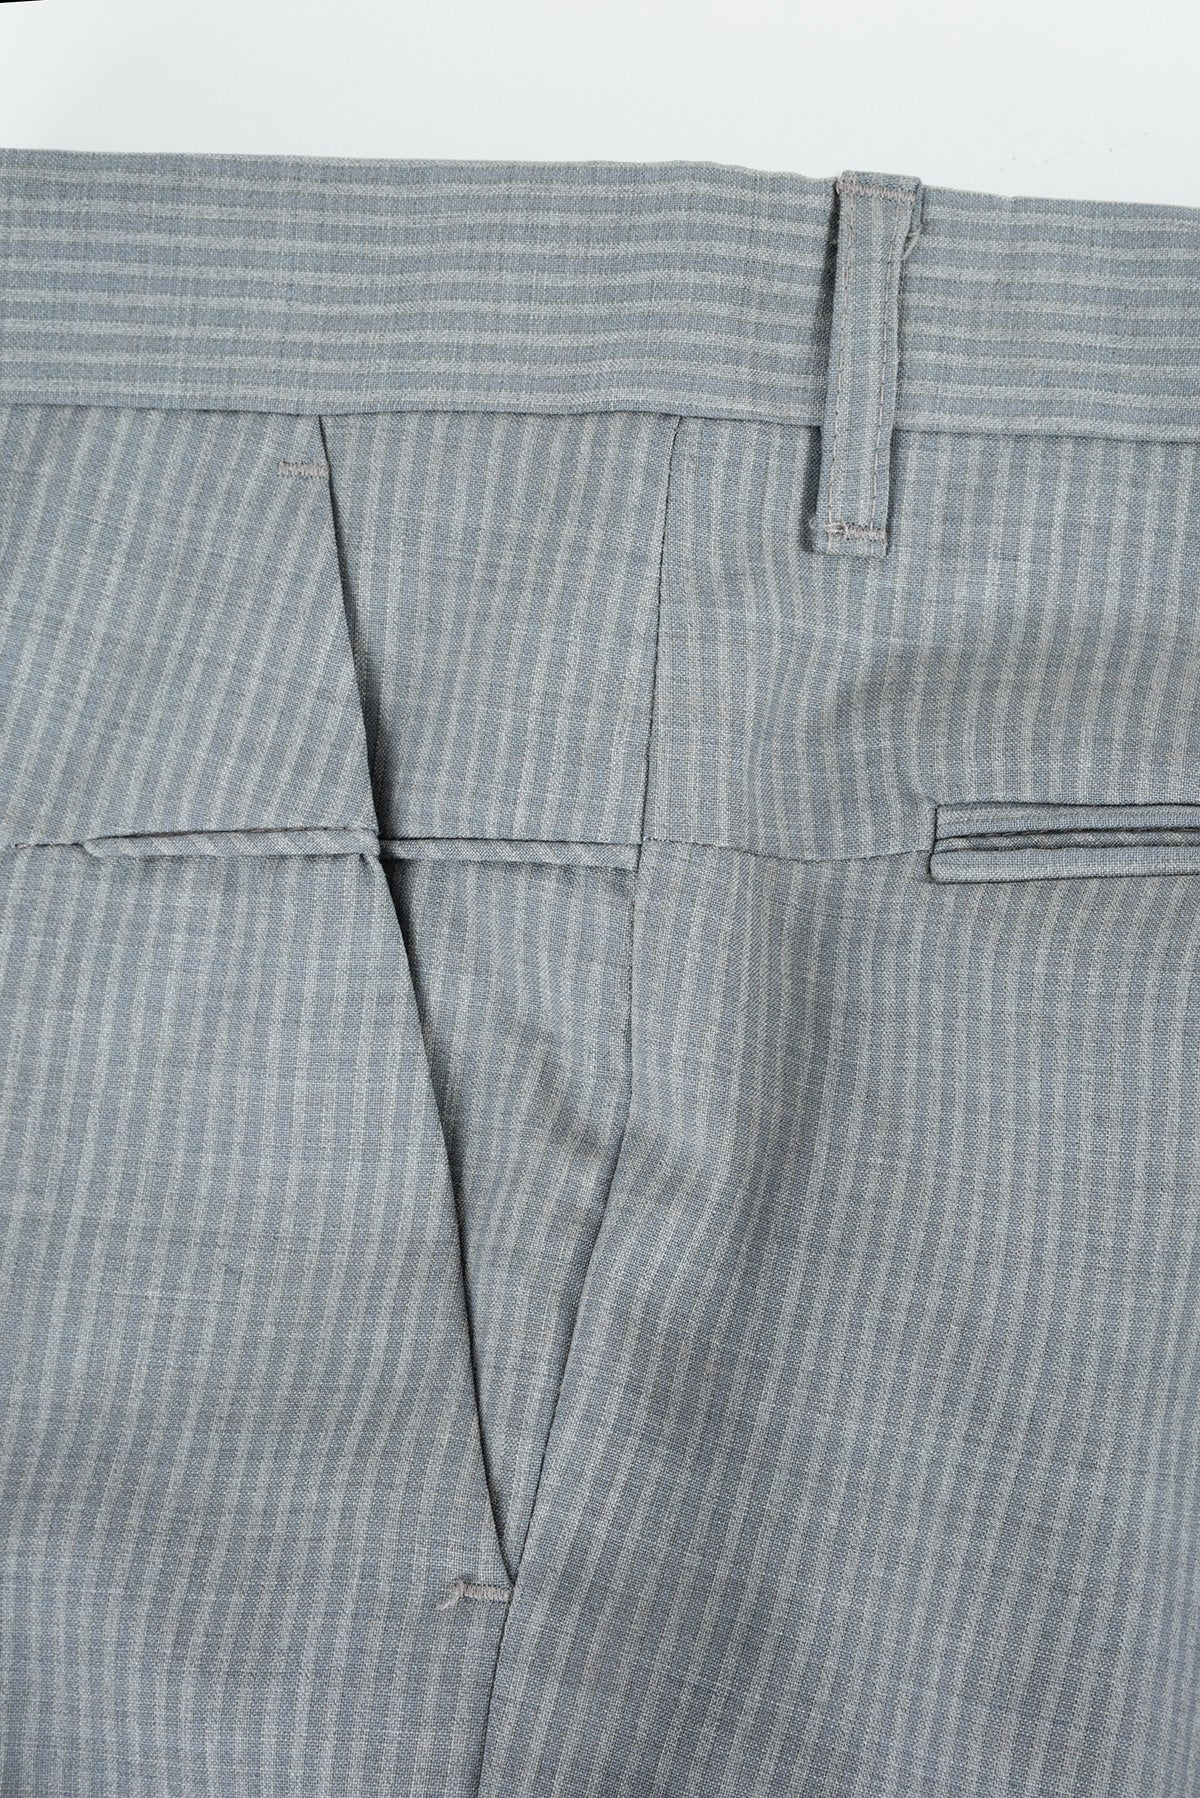 2008 S/S TROPICAL WOOL WIDE CUT TROUSERS WITH POCKET DETAILS